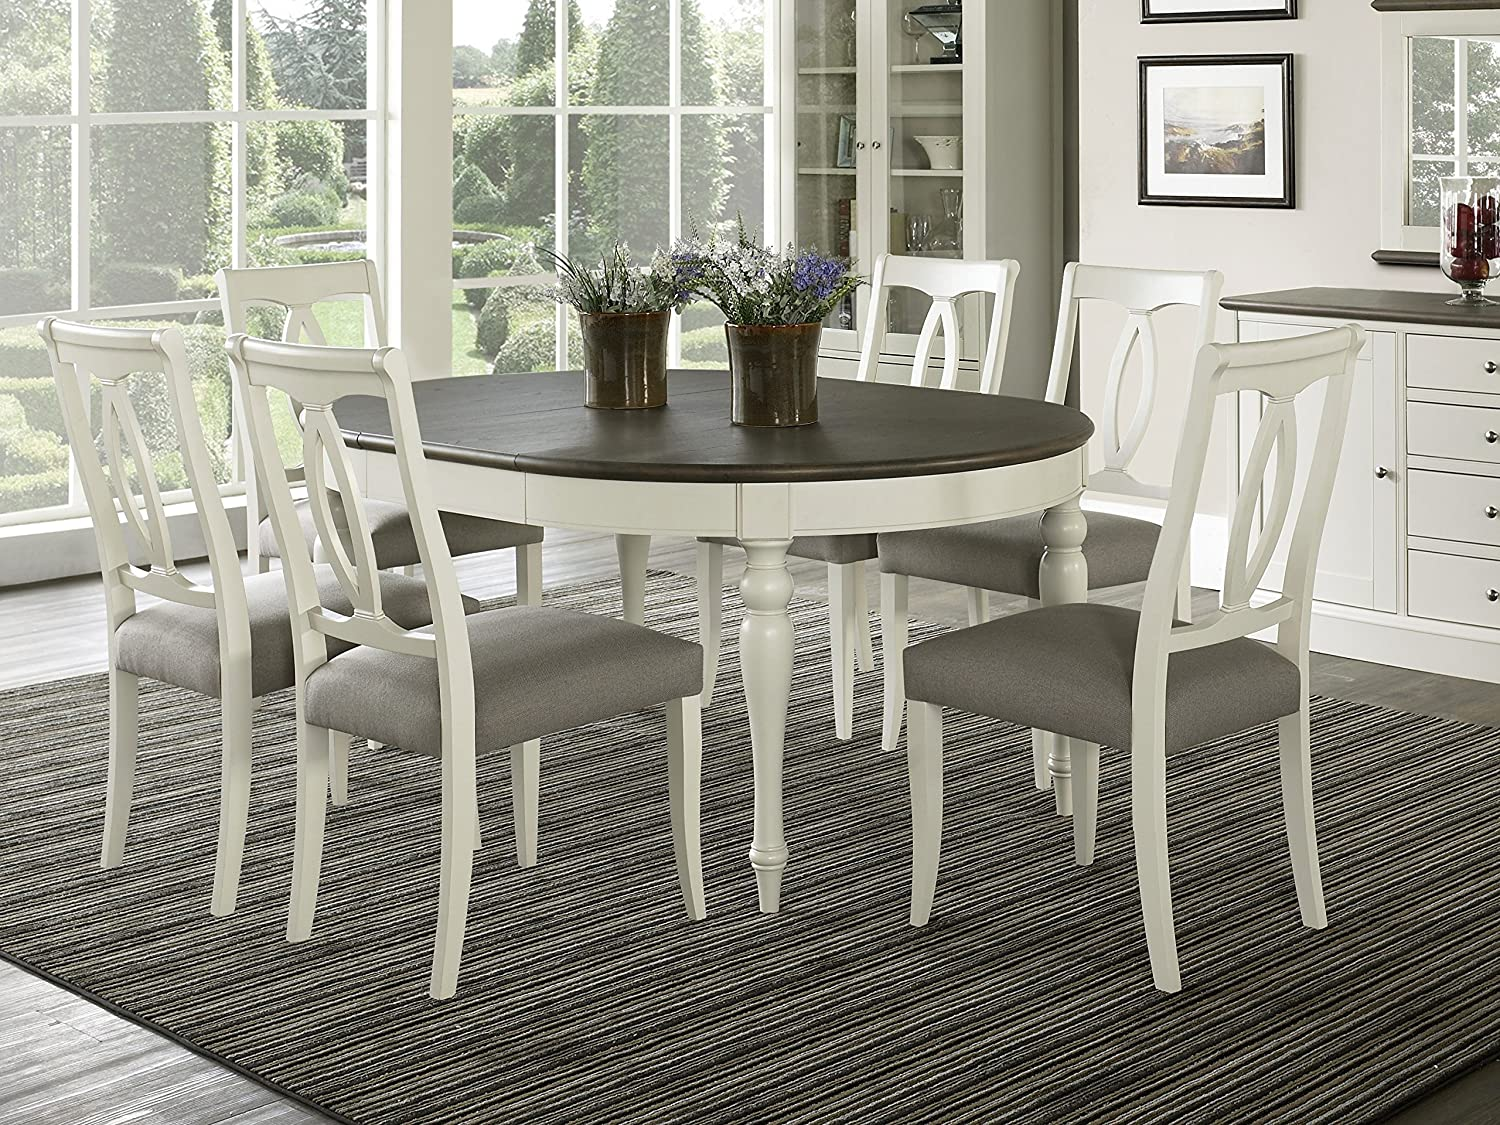 Everhome Designs - Vegas 7 Piece Round To Oval Extension Dining Table Set  for 6 (Oval Back Chairs)